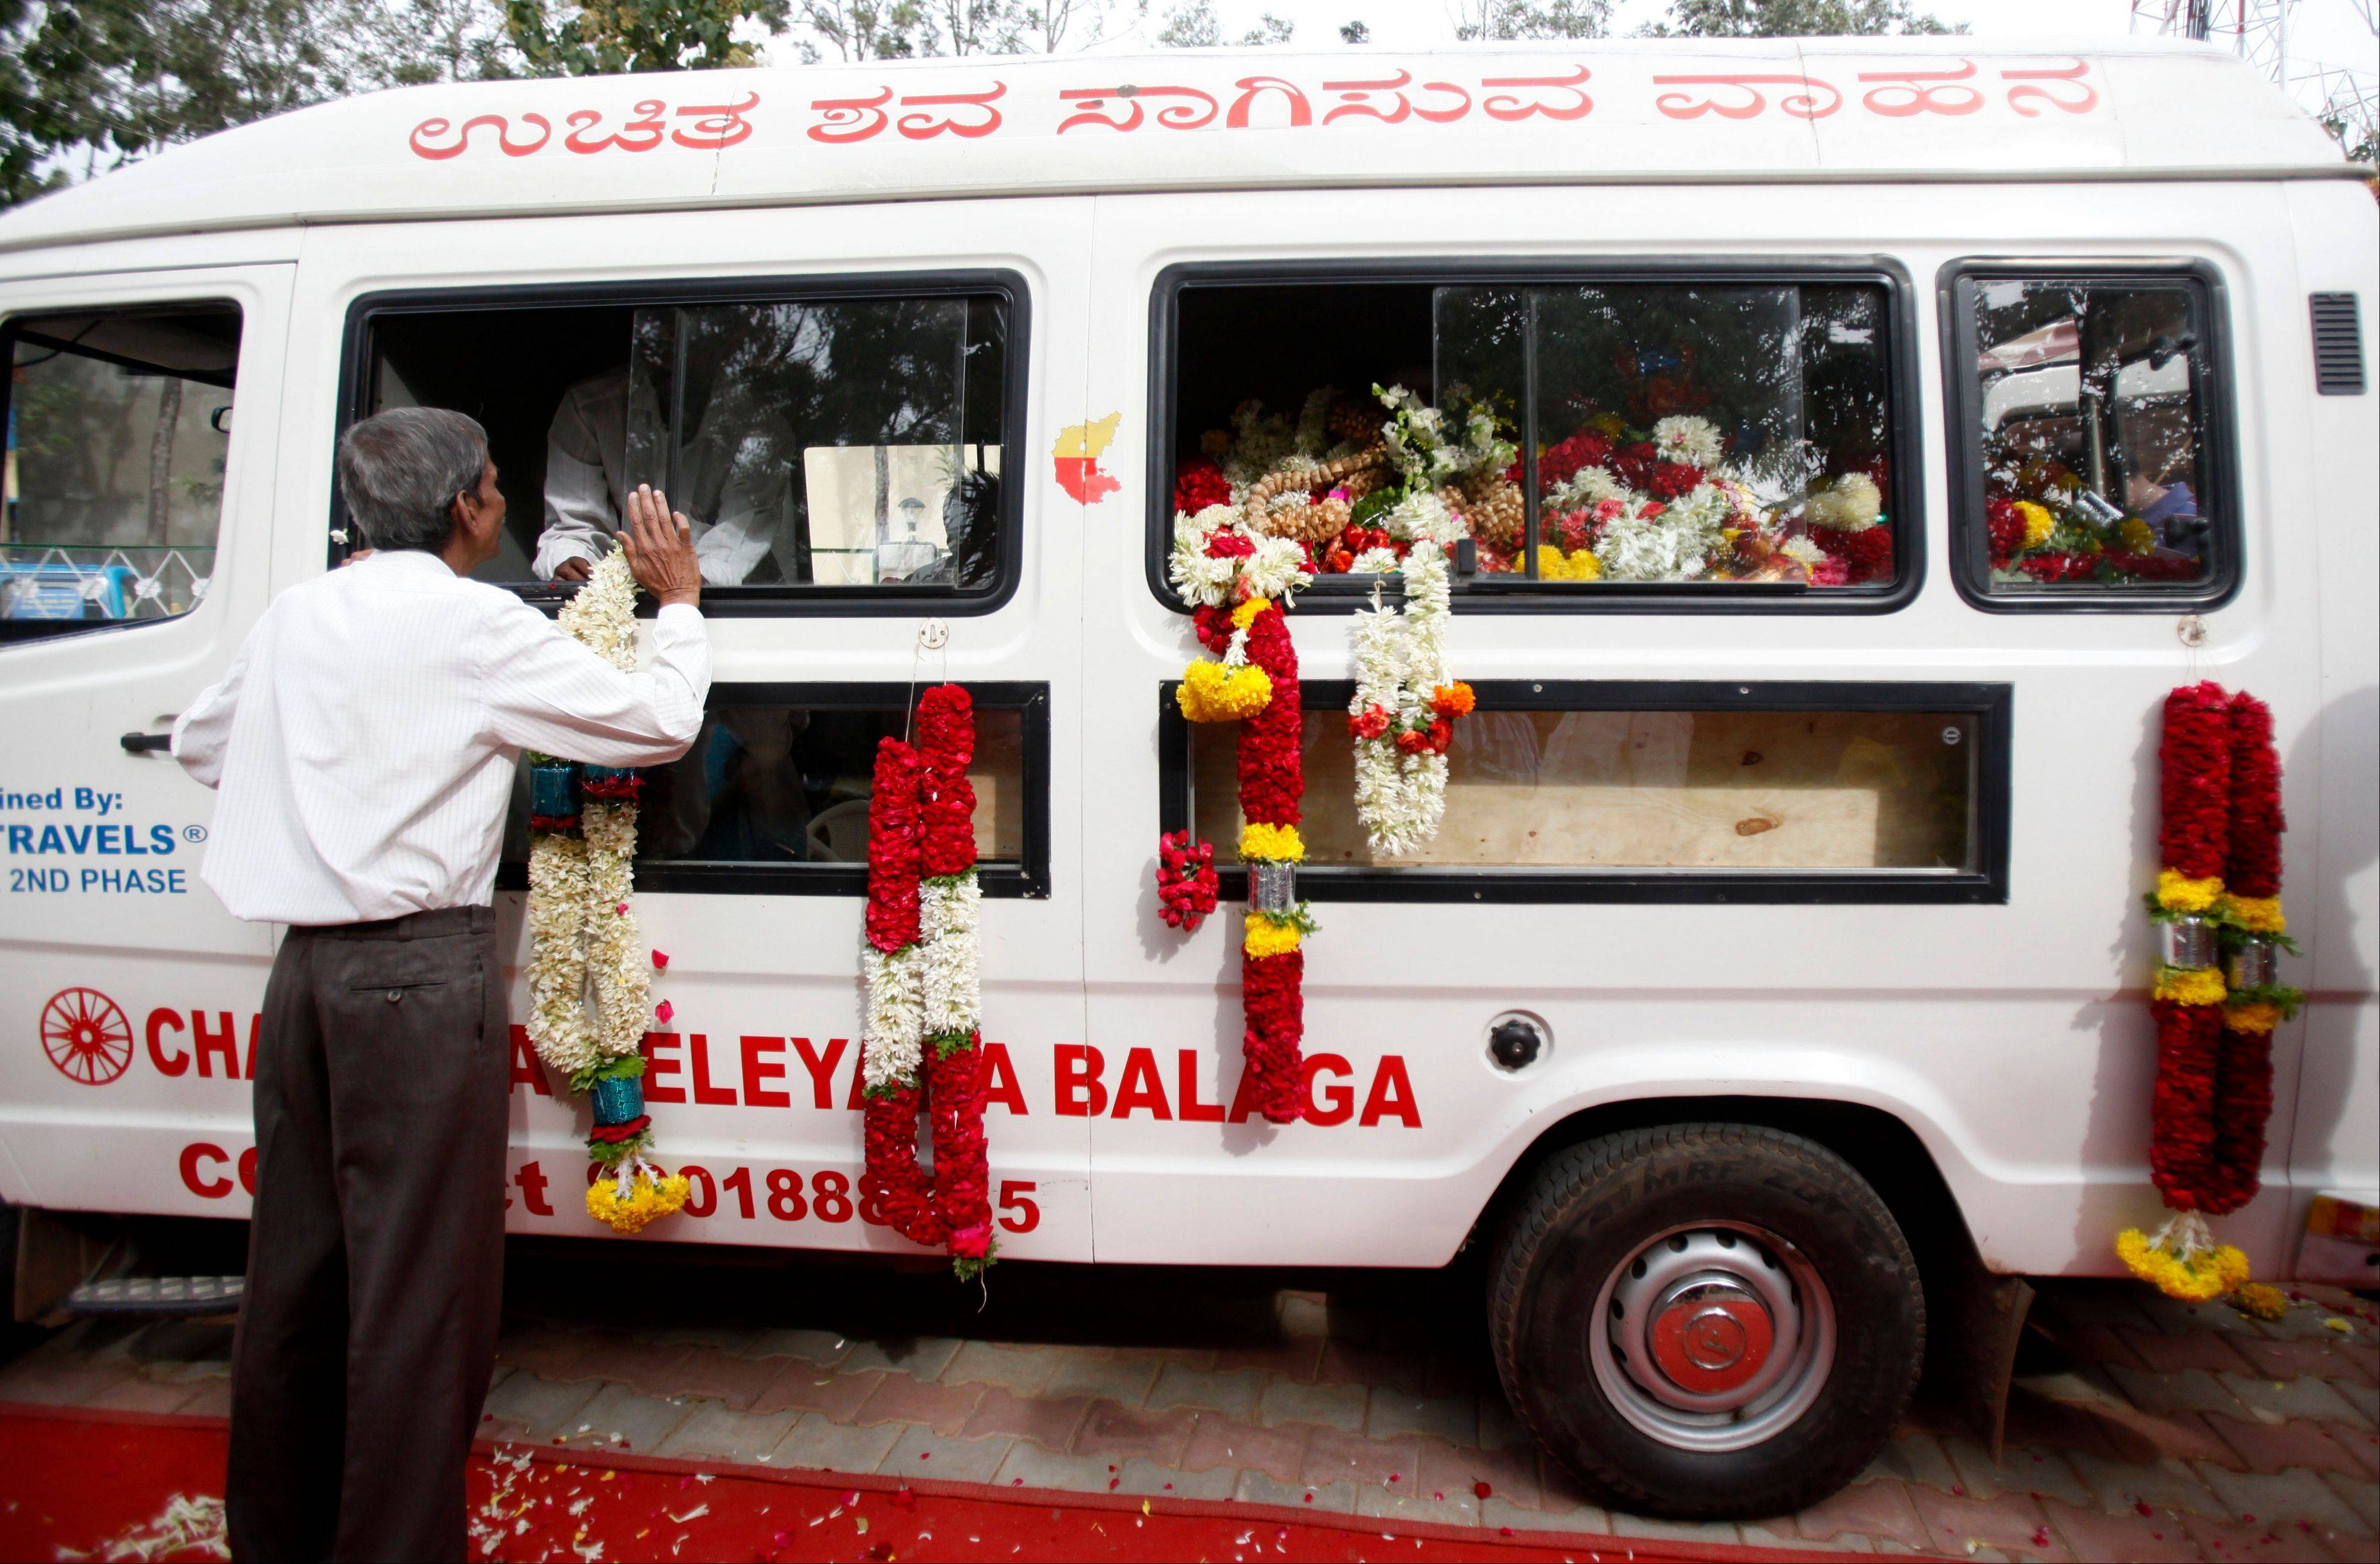 Garlands hang from an ambulance carrying the coffin of Sudharshan B. Nagaraj, who died in an attack on Westgate Mall in Nairobi, Kenya, before his body was taken for cremation, in Hejjala, 19 miles from Bangalore, India, Saturday, Sept. 28. Almost a week after 67 people were killed in the attack on the upscale shopping center in Nairobi, there is still no clear word on the fate of dozens who have been reported missing and no details on the terrorists who carried it out. Nagaraj was in Nairobi on a business trip.